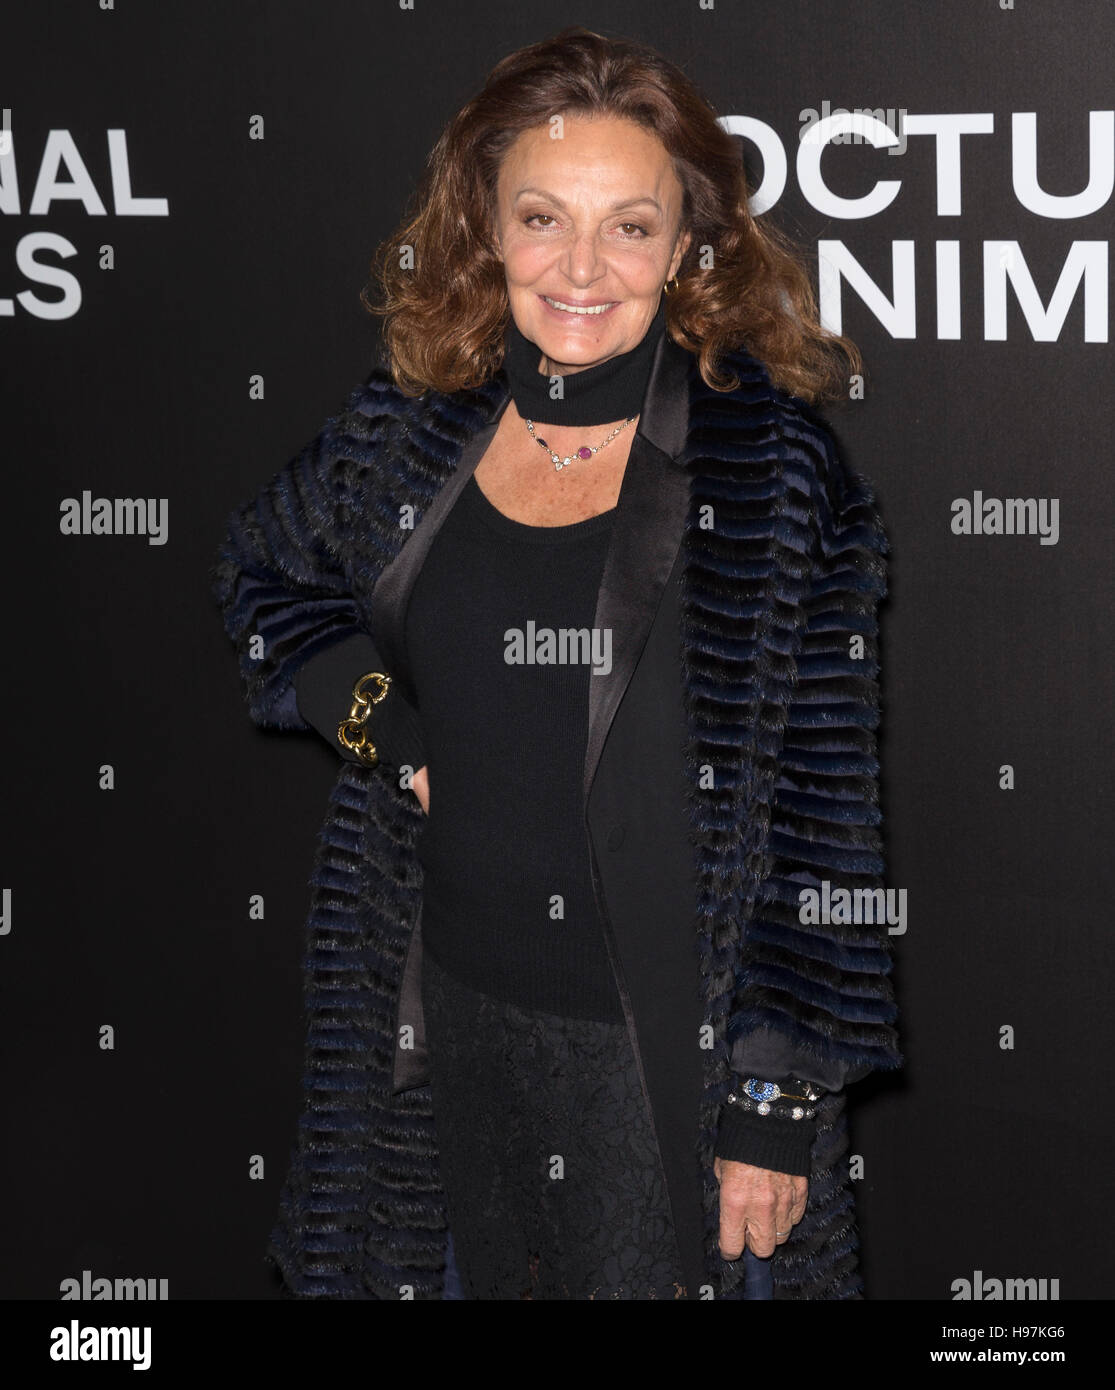 New York City, USA - November 17, 2016: Designer Diane von Furstenberg attends the 'Nocturnal Animals' New - Stock Image